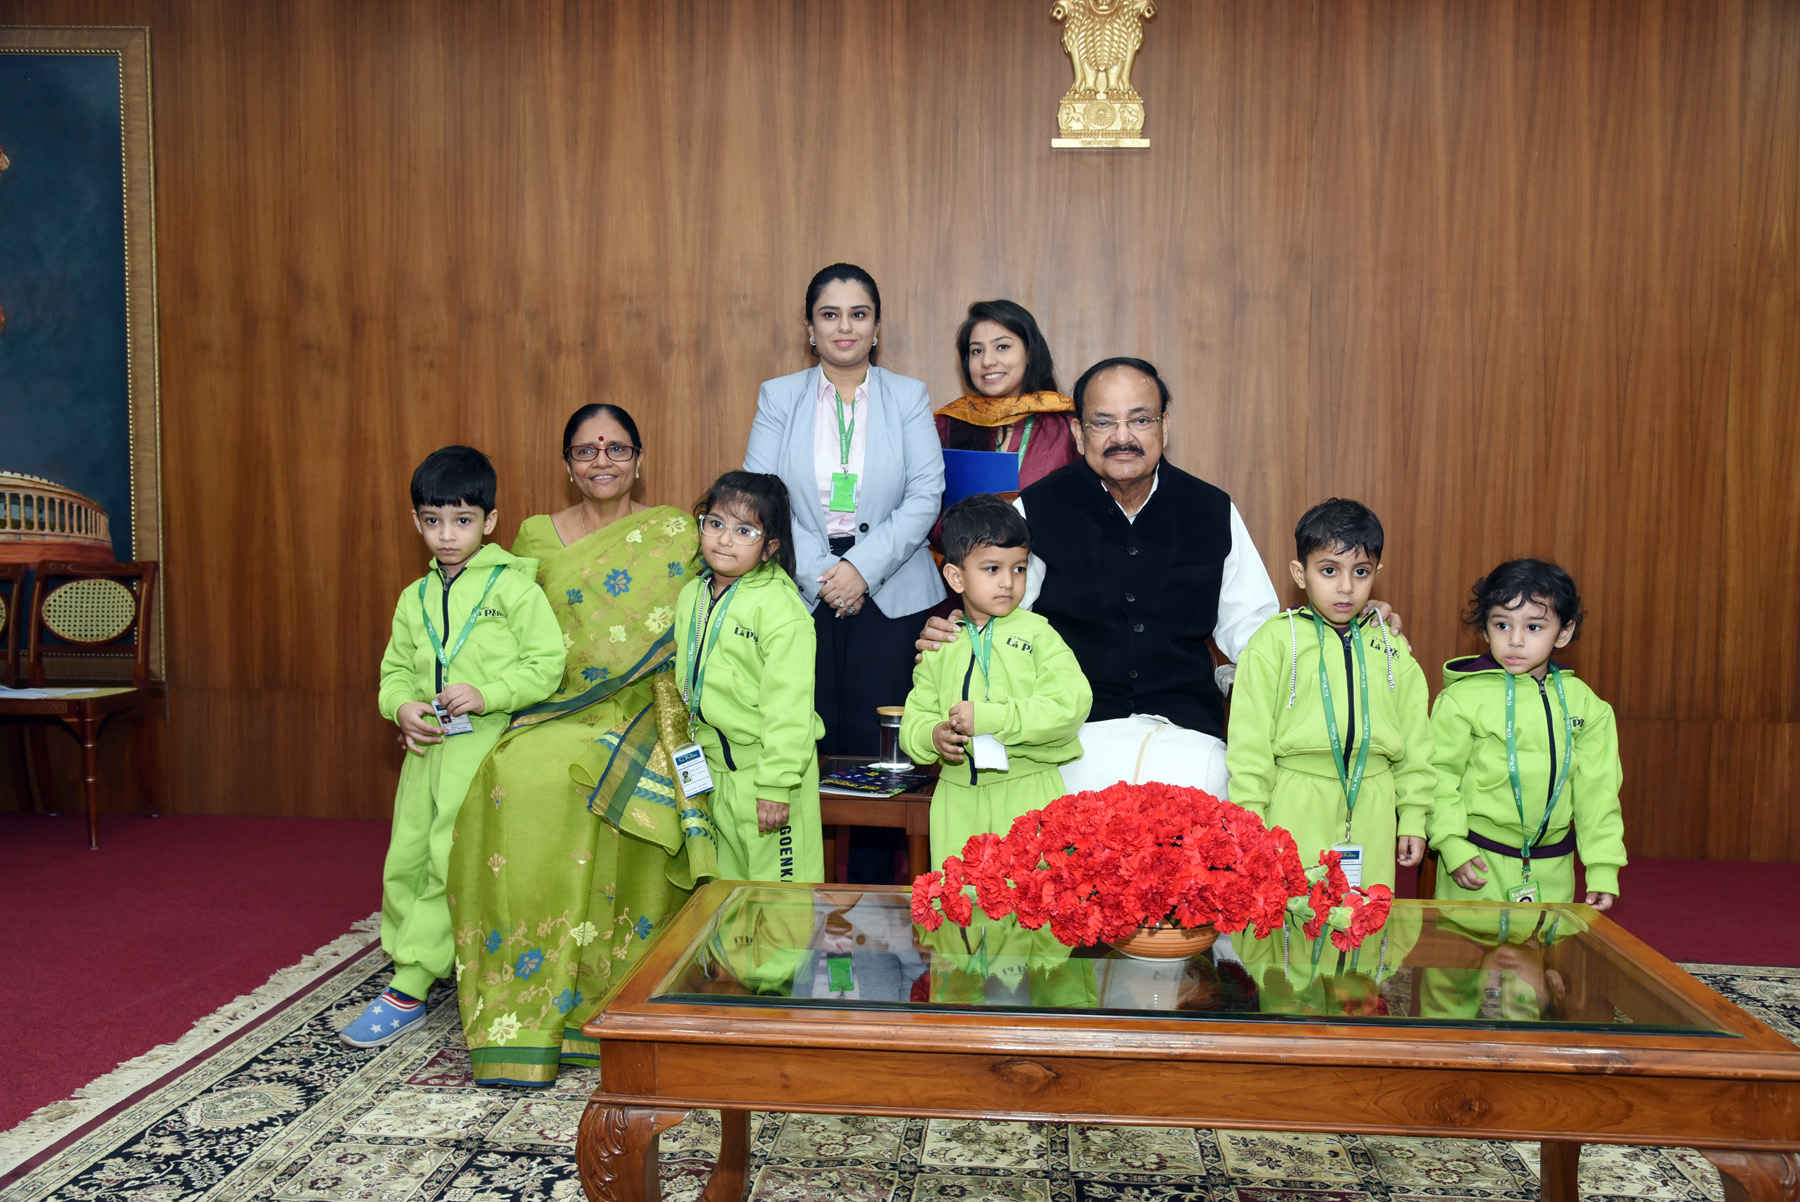 The Vice President, Shri M. Venkaiah Naidu interacting with students from various school from across National Capital Region, Haryana, Uttar Pradesh and other Neighbouring states on the occasion of Children's Day, in New Delhi on 14 November, 2019.